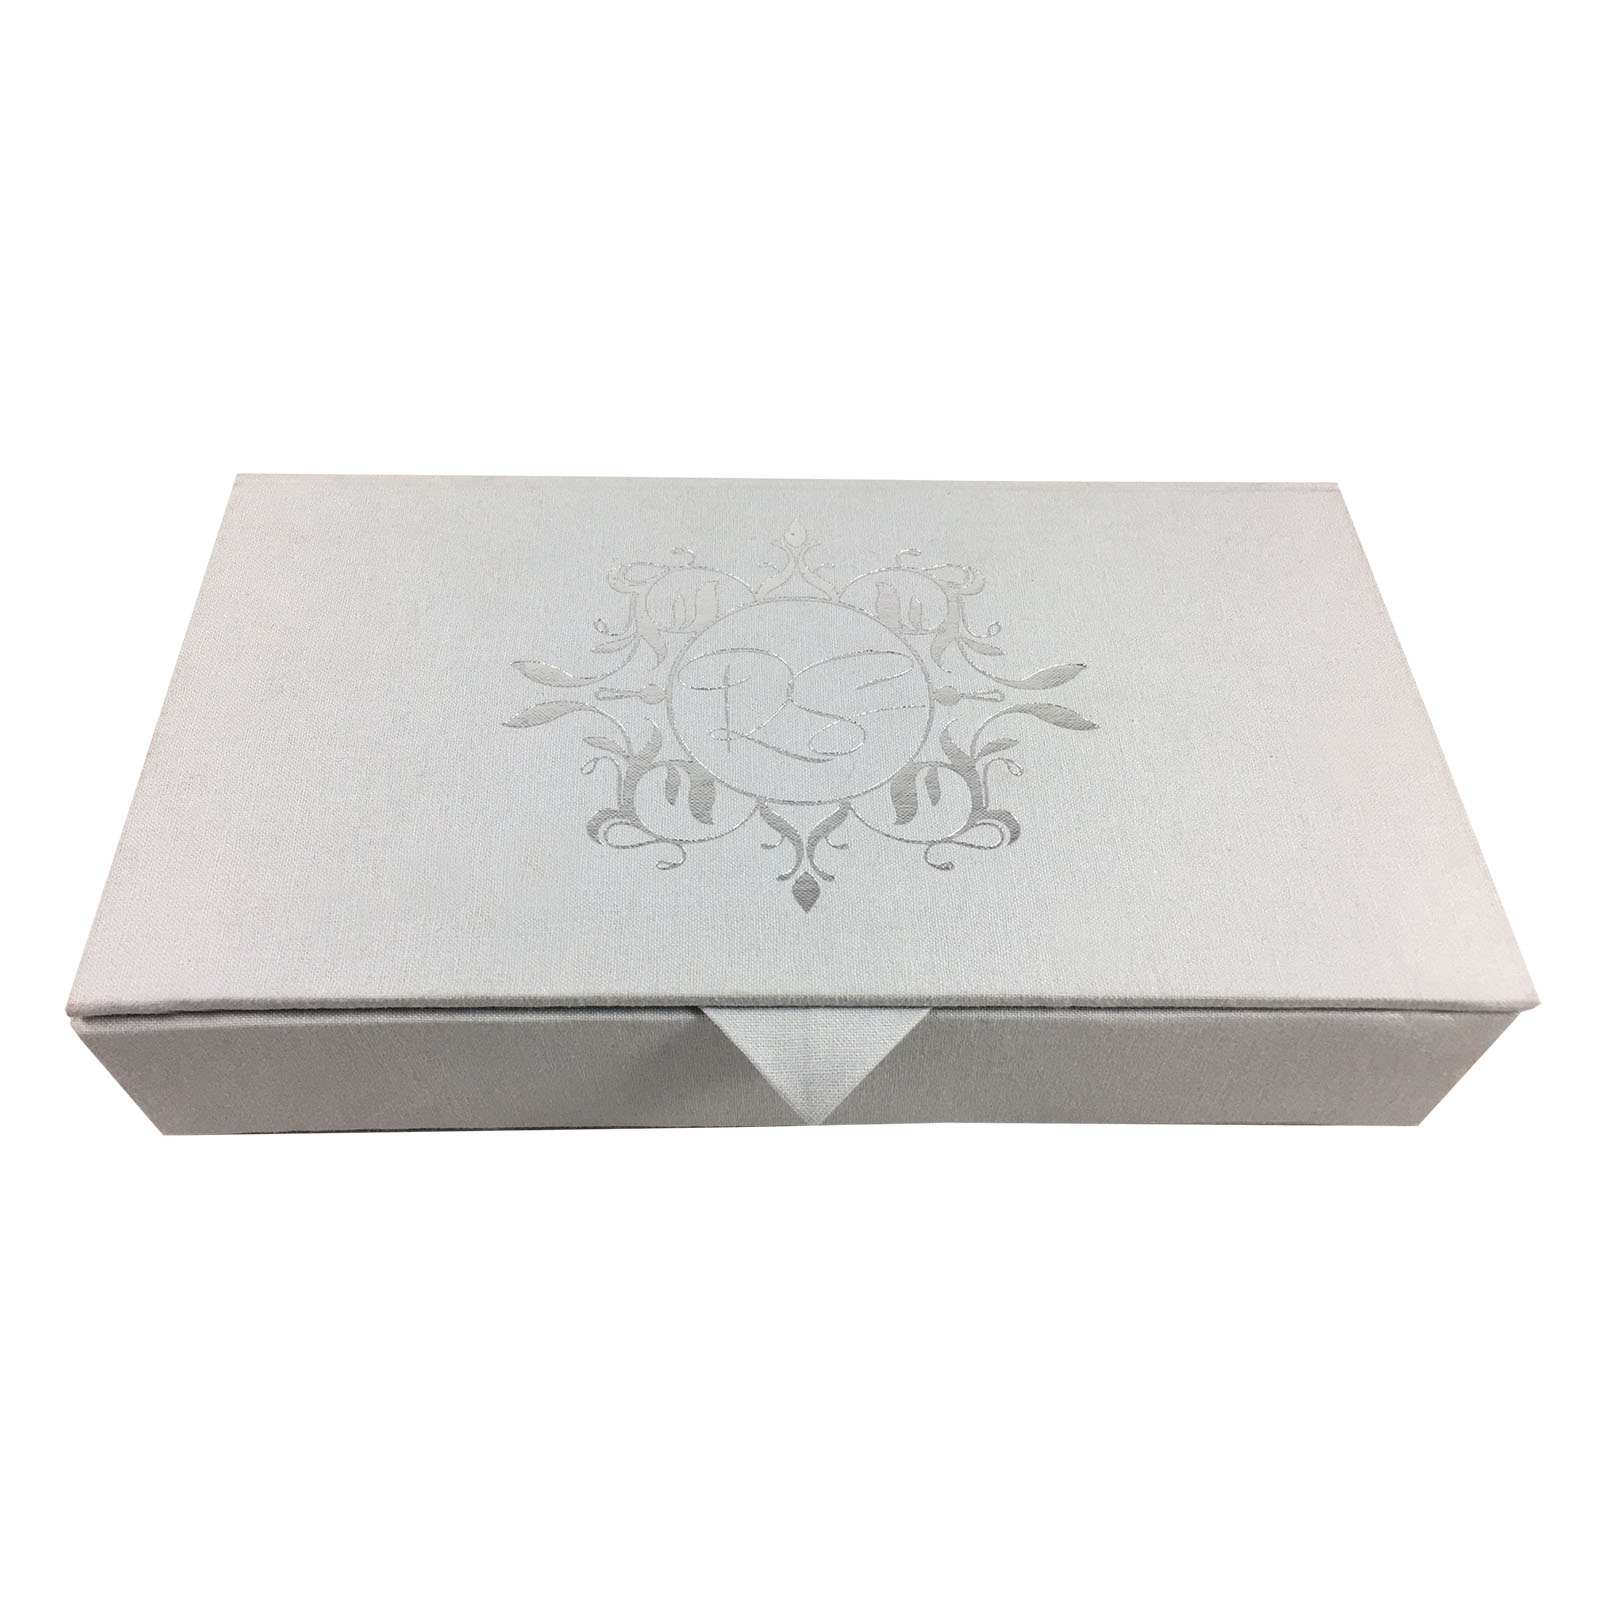 Foil stamped linen wedding box with monogram